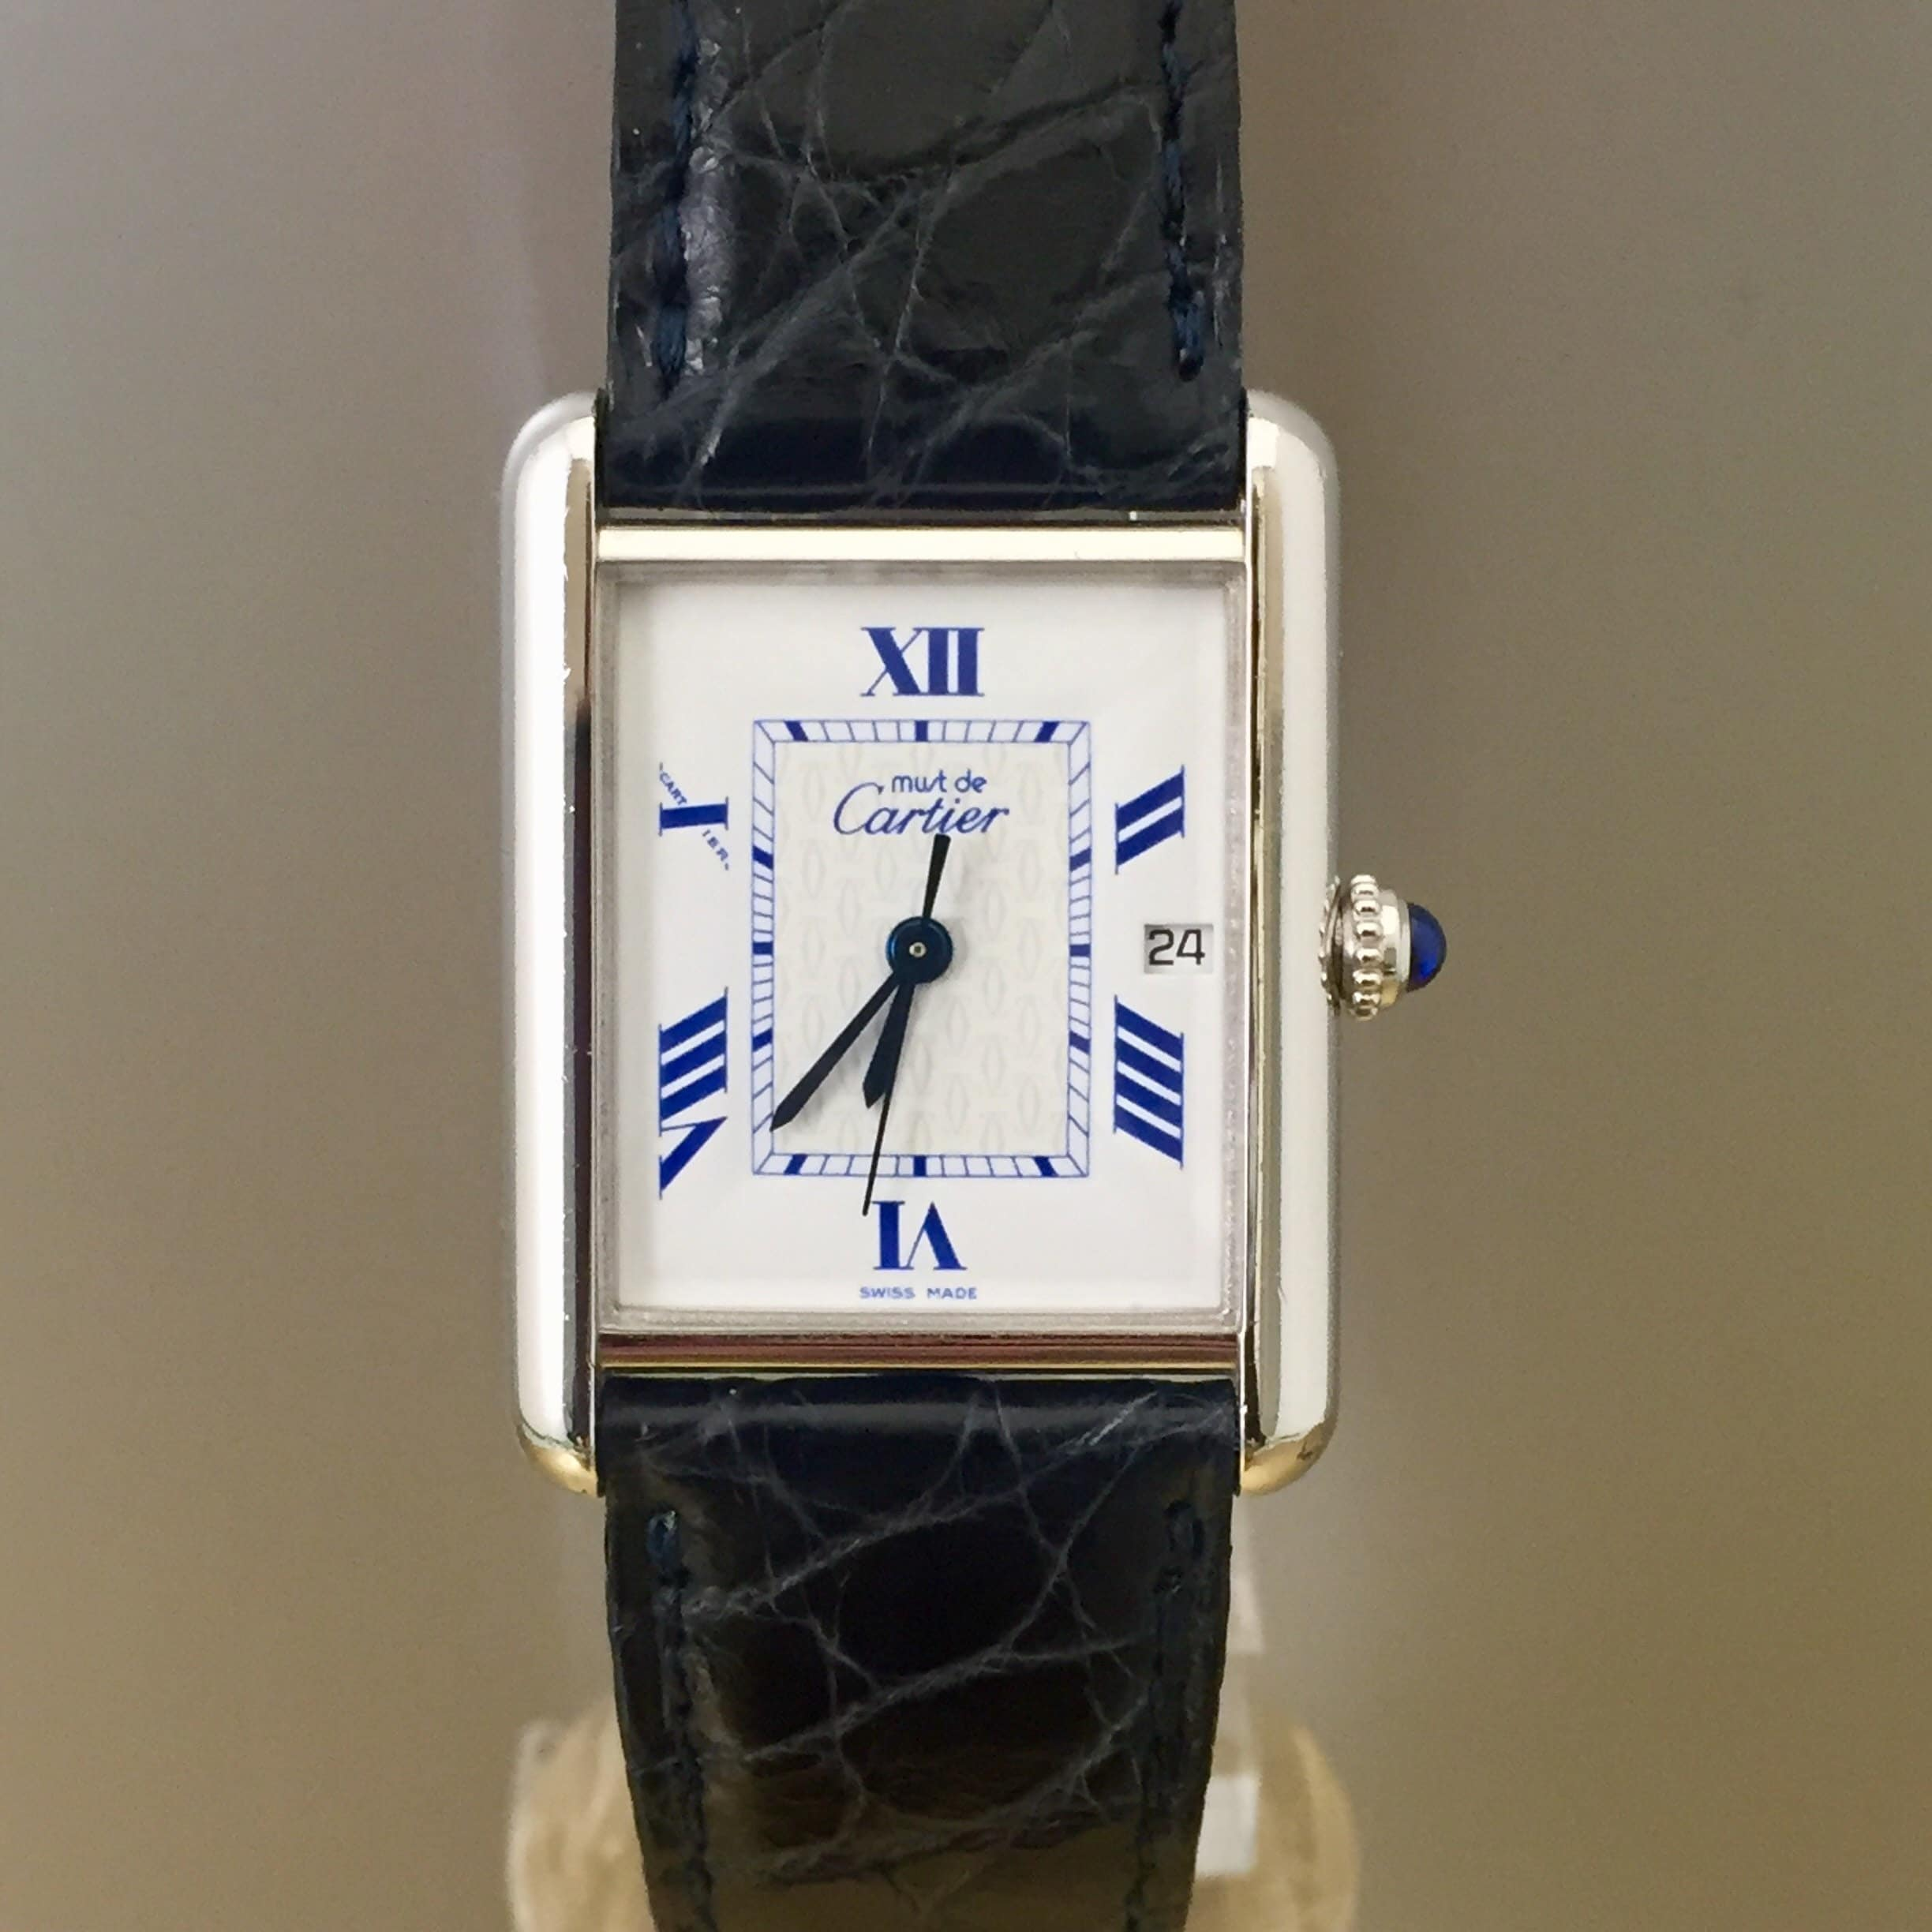 ae736970de6 Cartier Tank Watch 2414 Mens unisex Quartz Movement